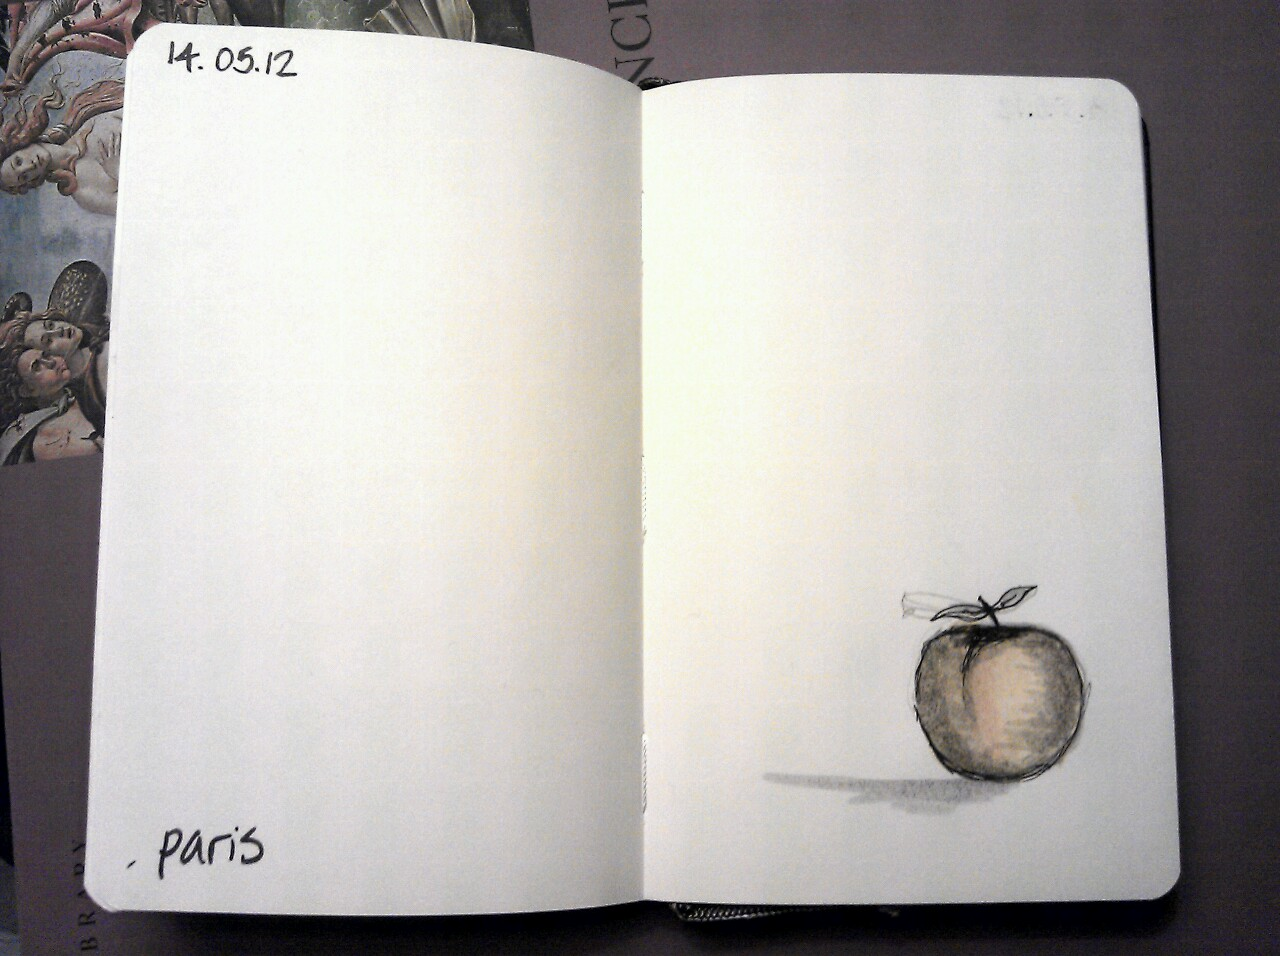 365 drawings later … day 104 … paris (golden apple)